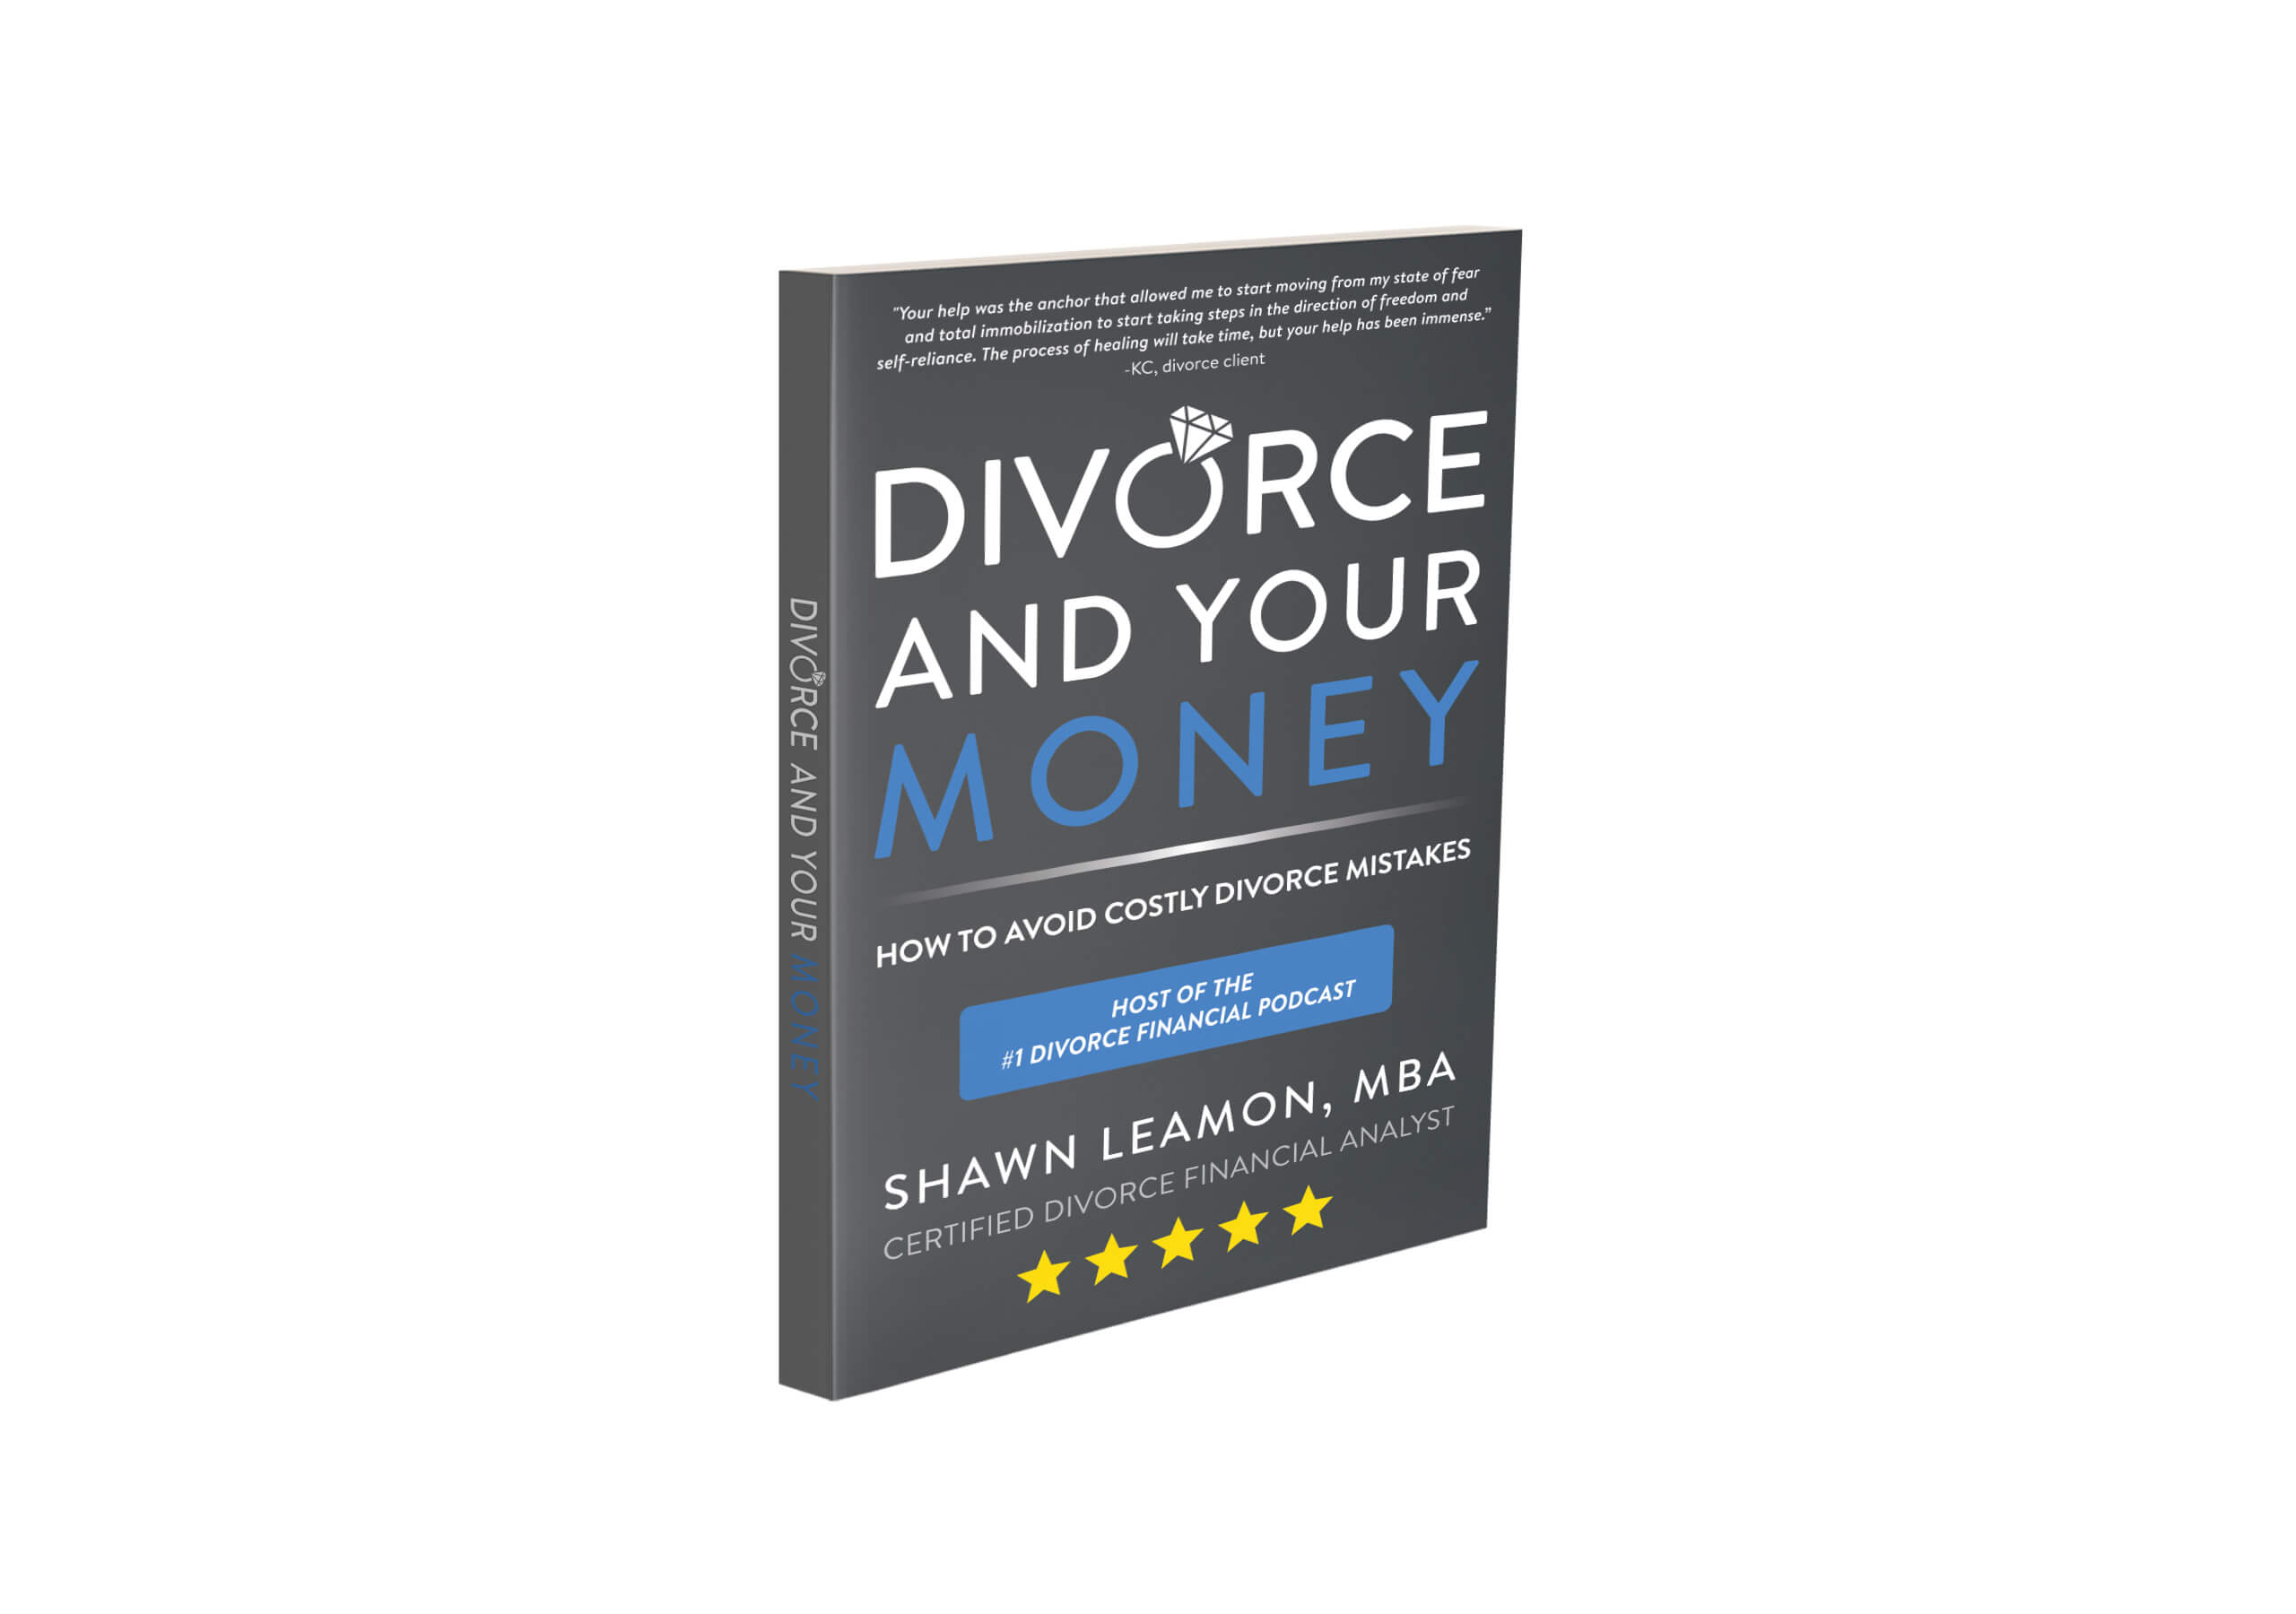 Divorce and Your Money - How to Avoid Costly Divorce Mistakes